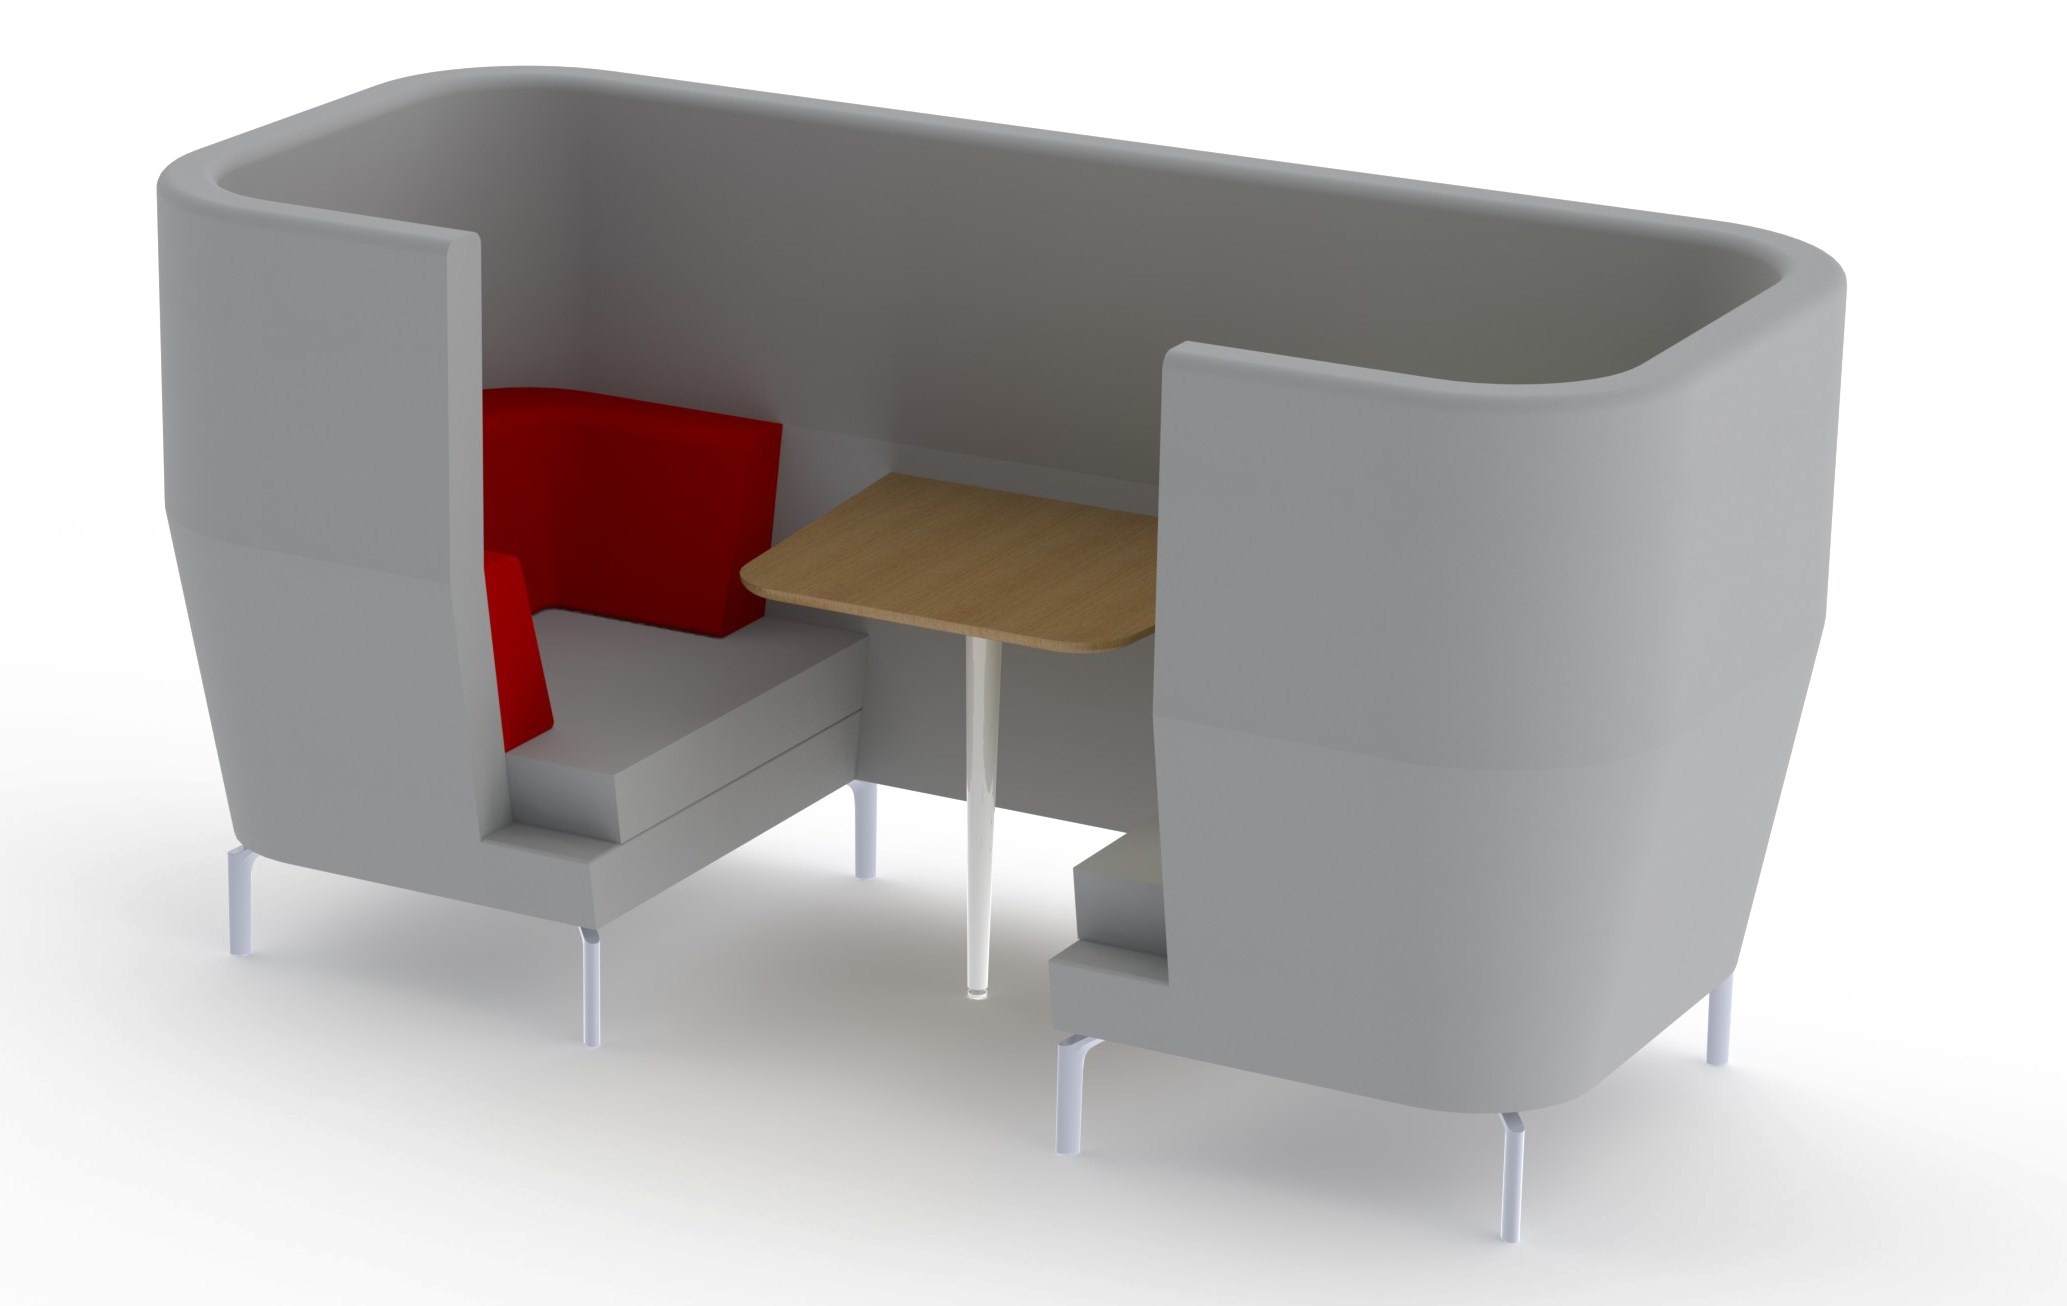 Entente office seating goes cordiale in design